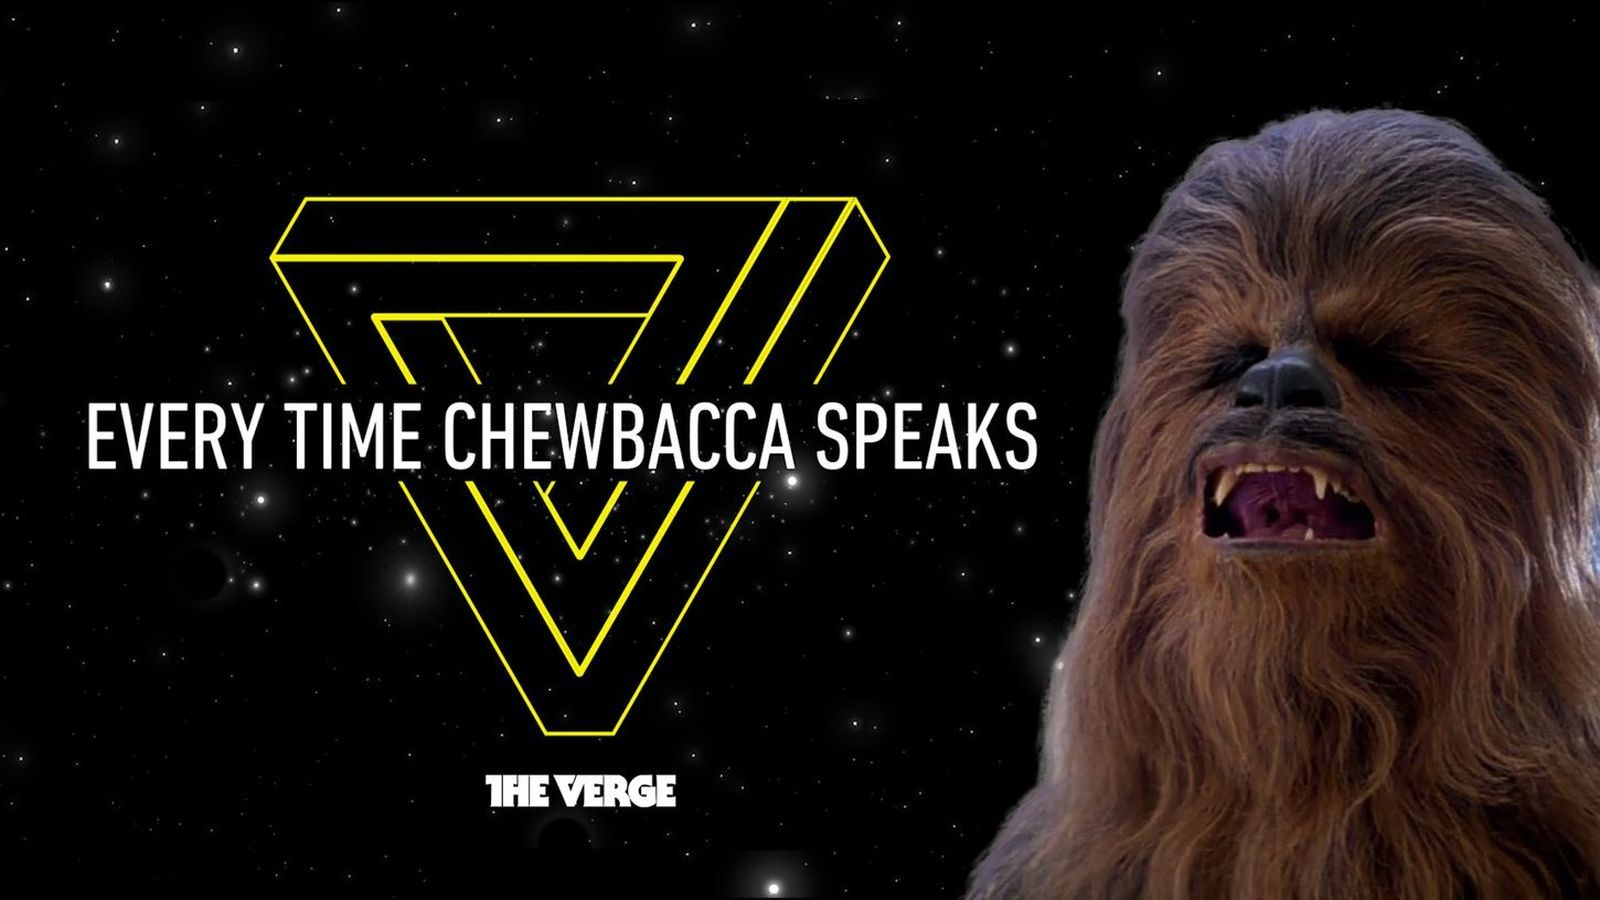 Star Wars, told through the dialogue of our favorite Wookiee.